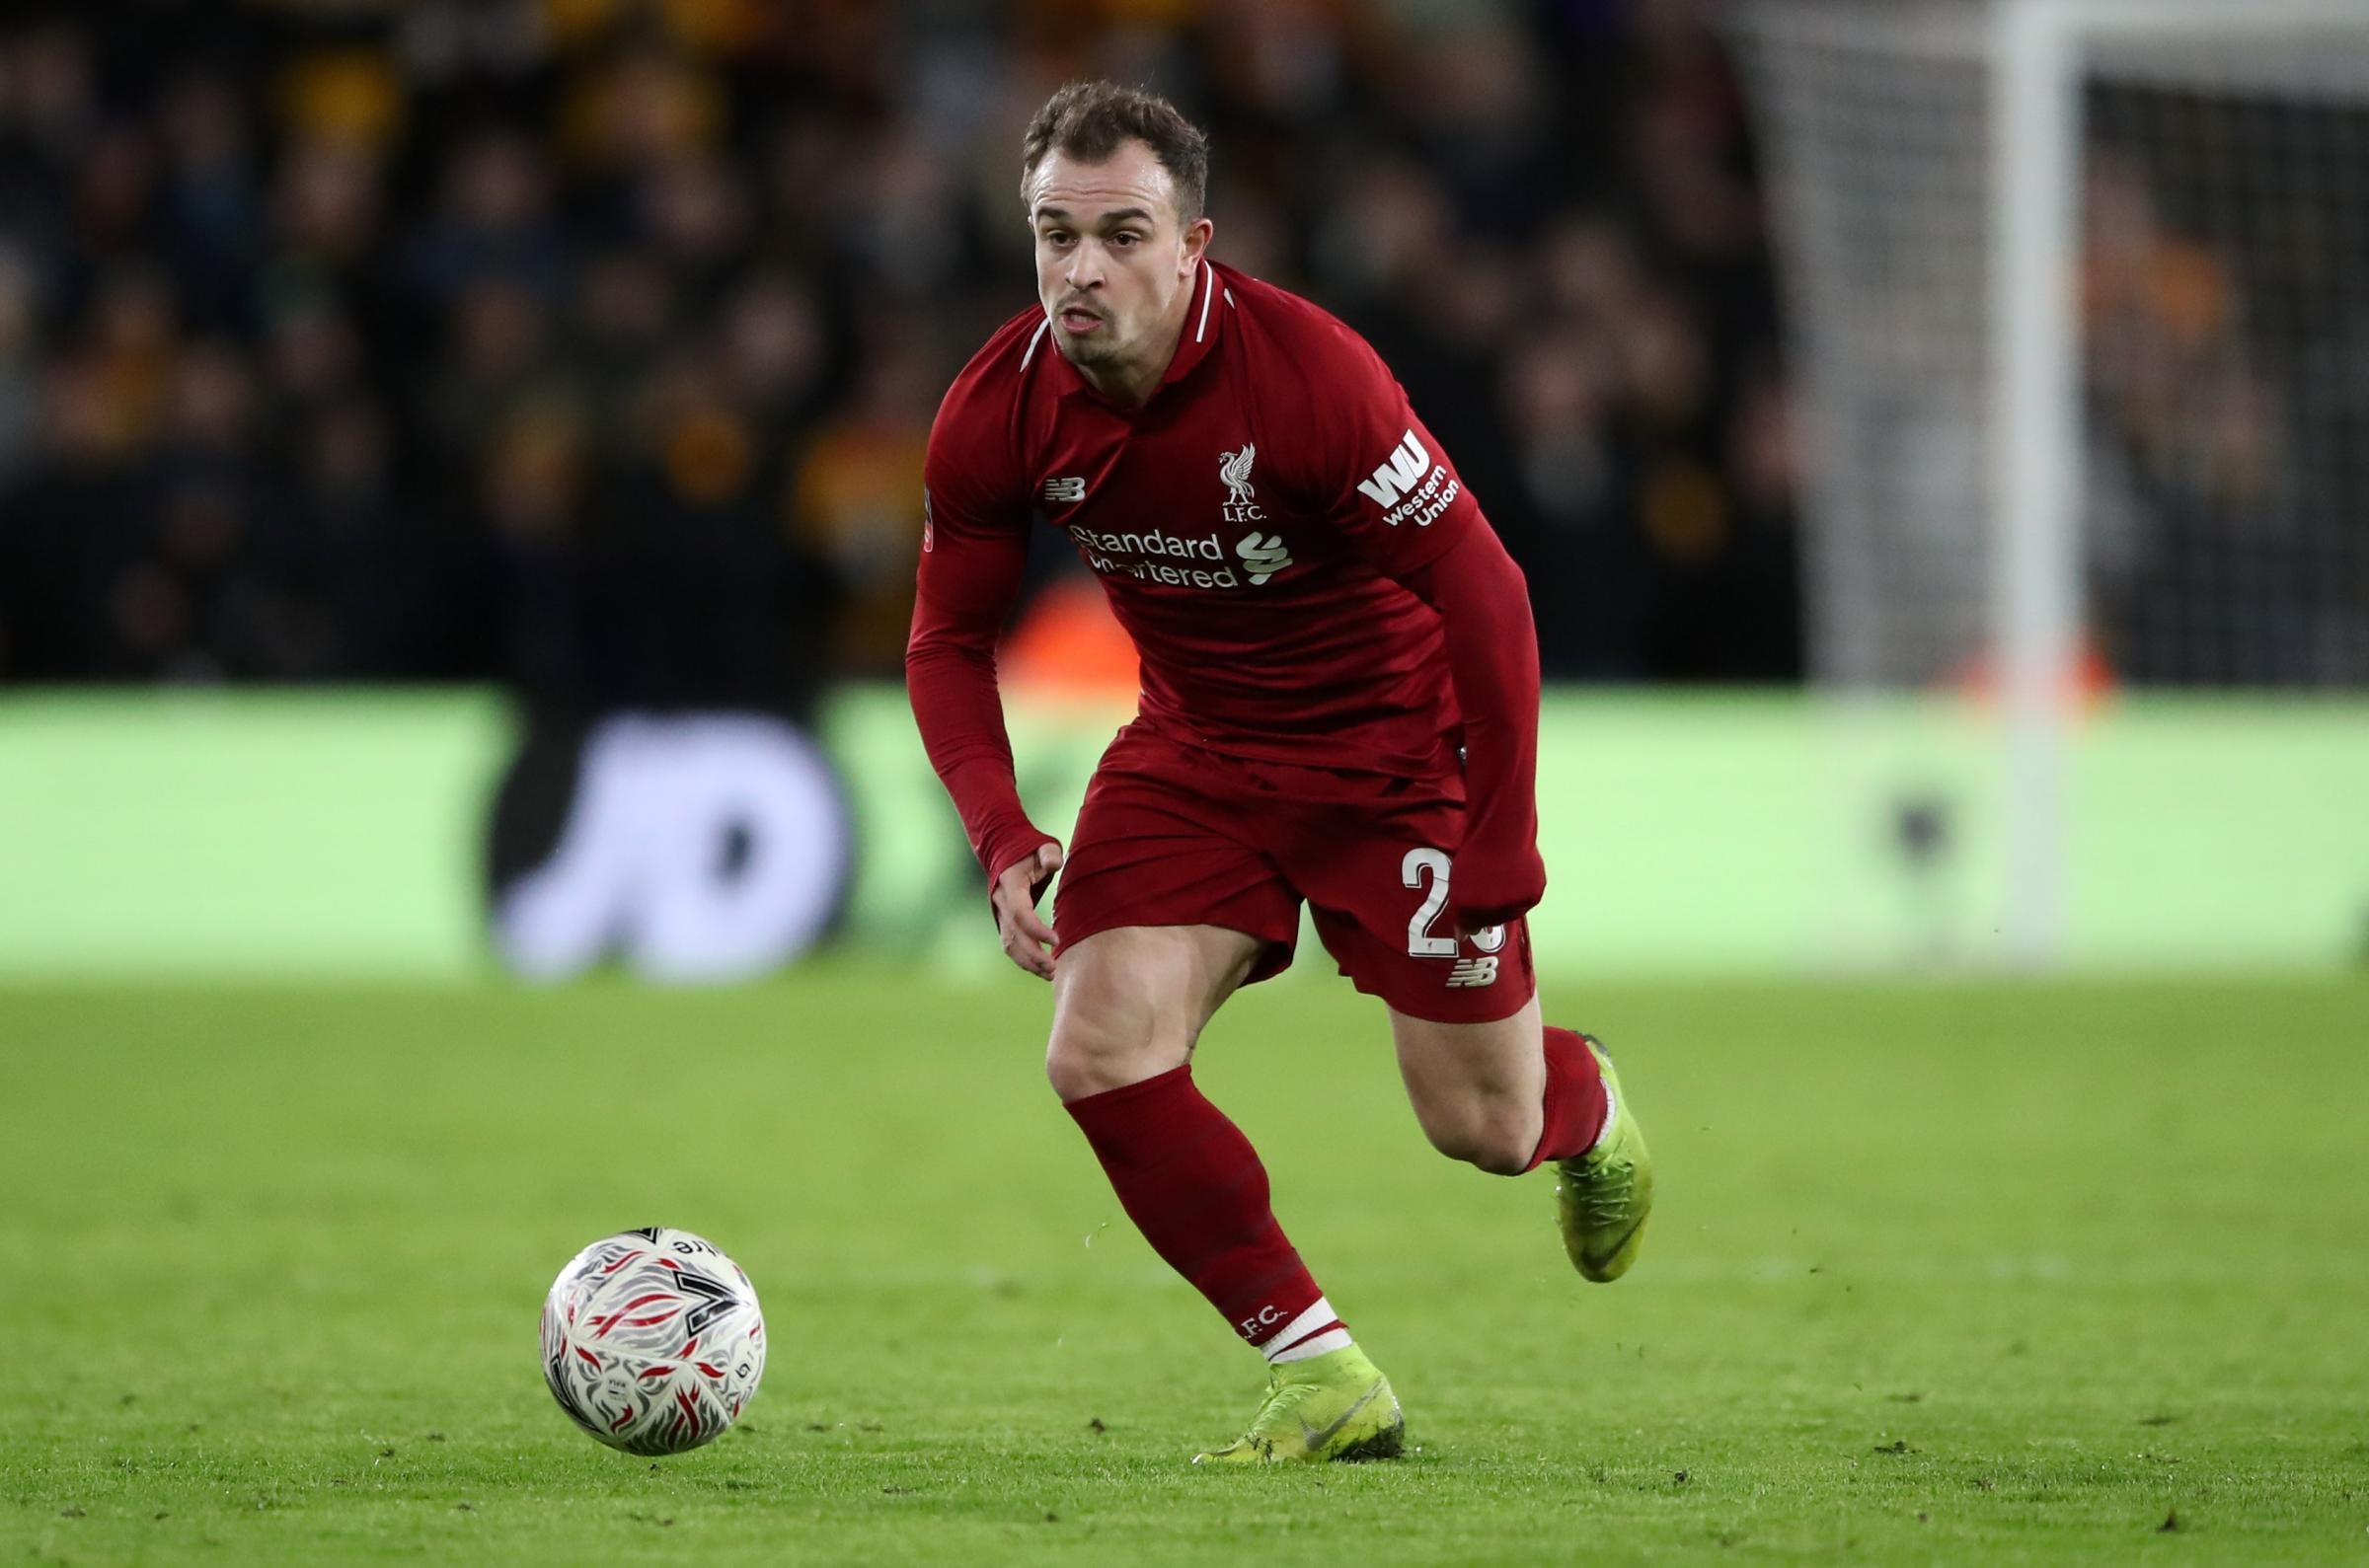 Liverpool's Xherdan Shaqiri is looking forward to the Champions League tie with former club Bayern Munich